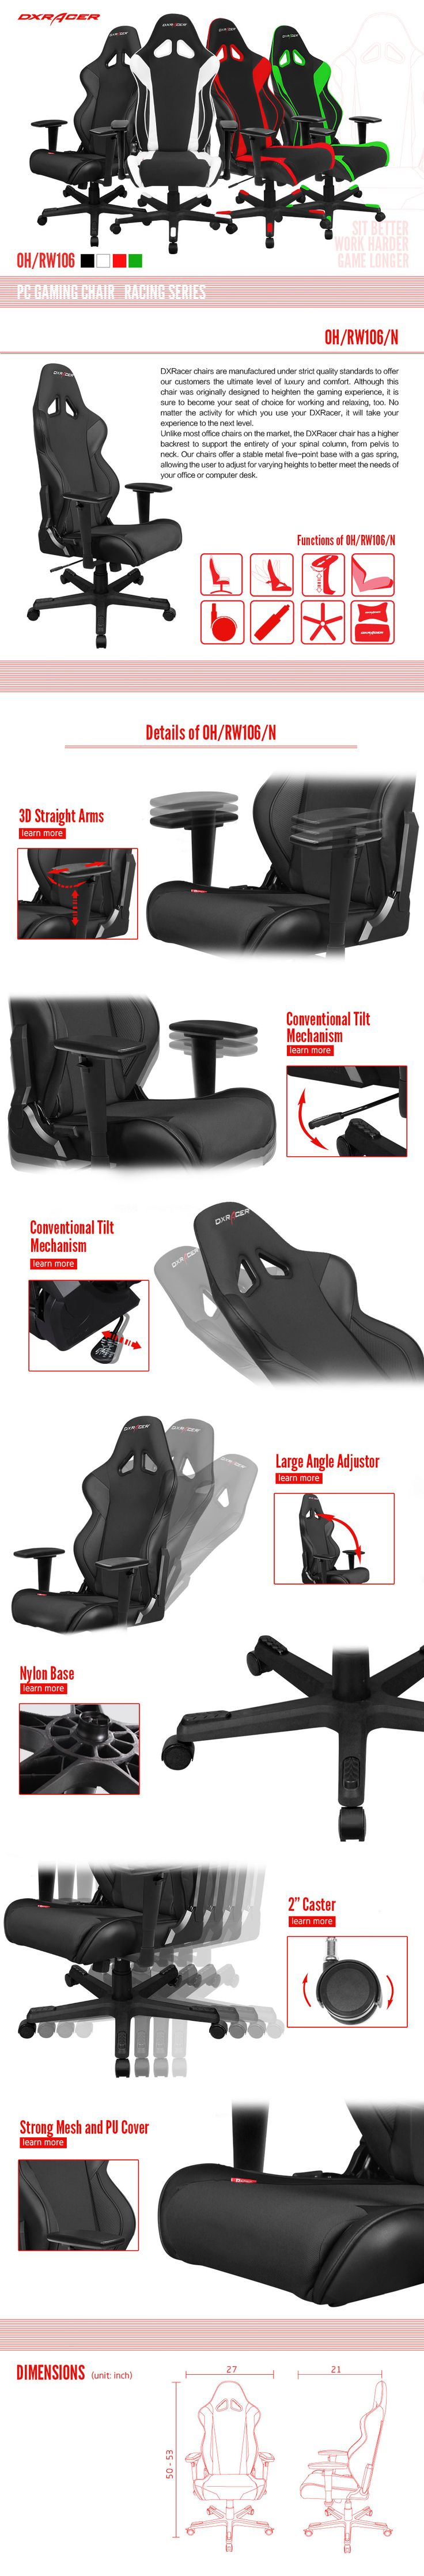 OH/RW106/N - Racing Series - PC Gaming Chair | DXRacer Official Website                                                                                                                                                                                 More